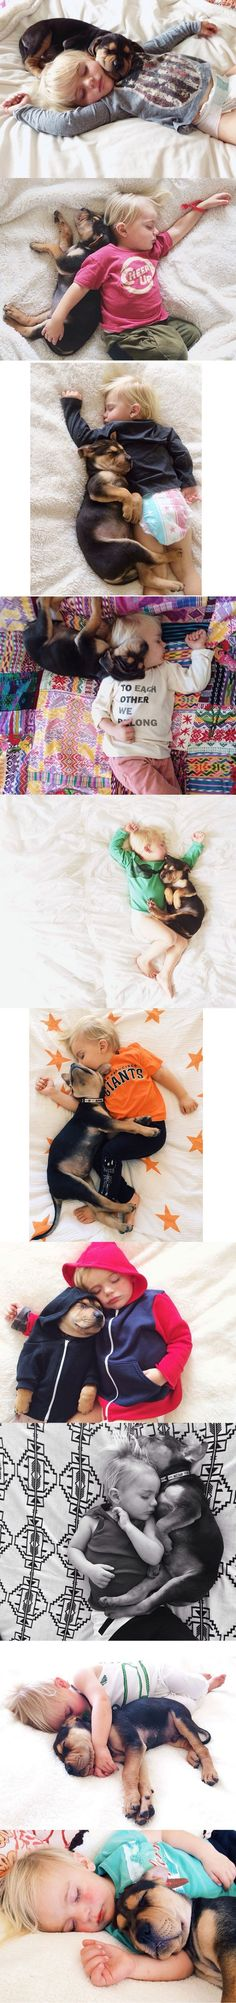 Theo and Beau - A napping toddler and his dog...